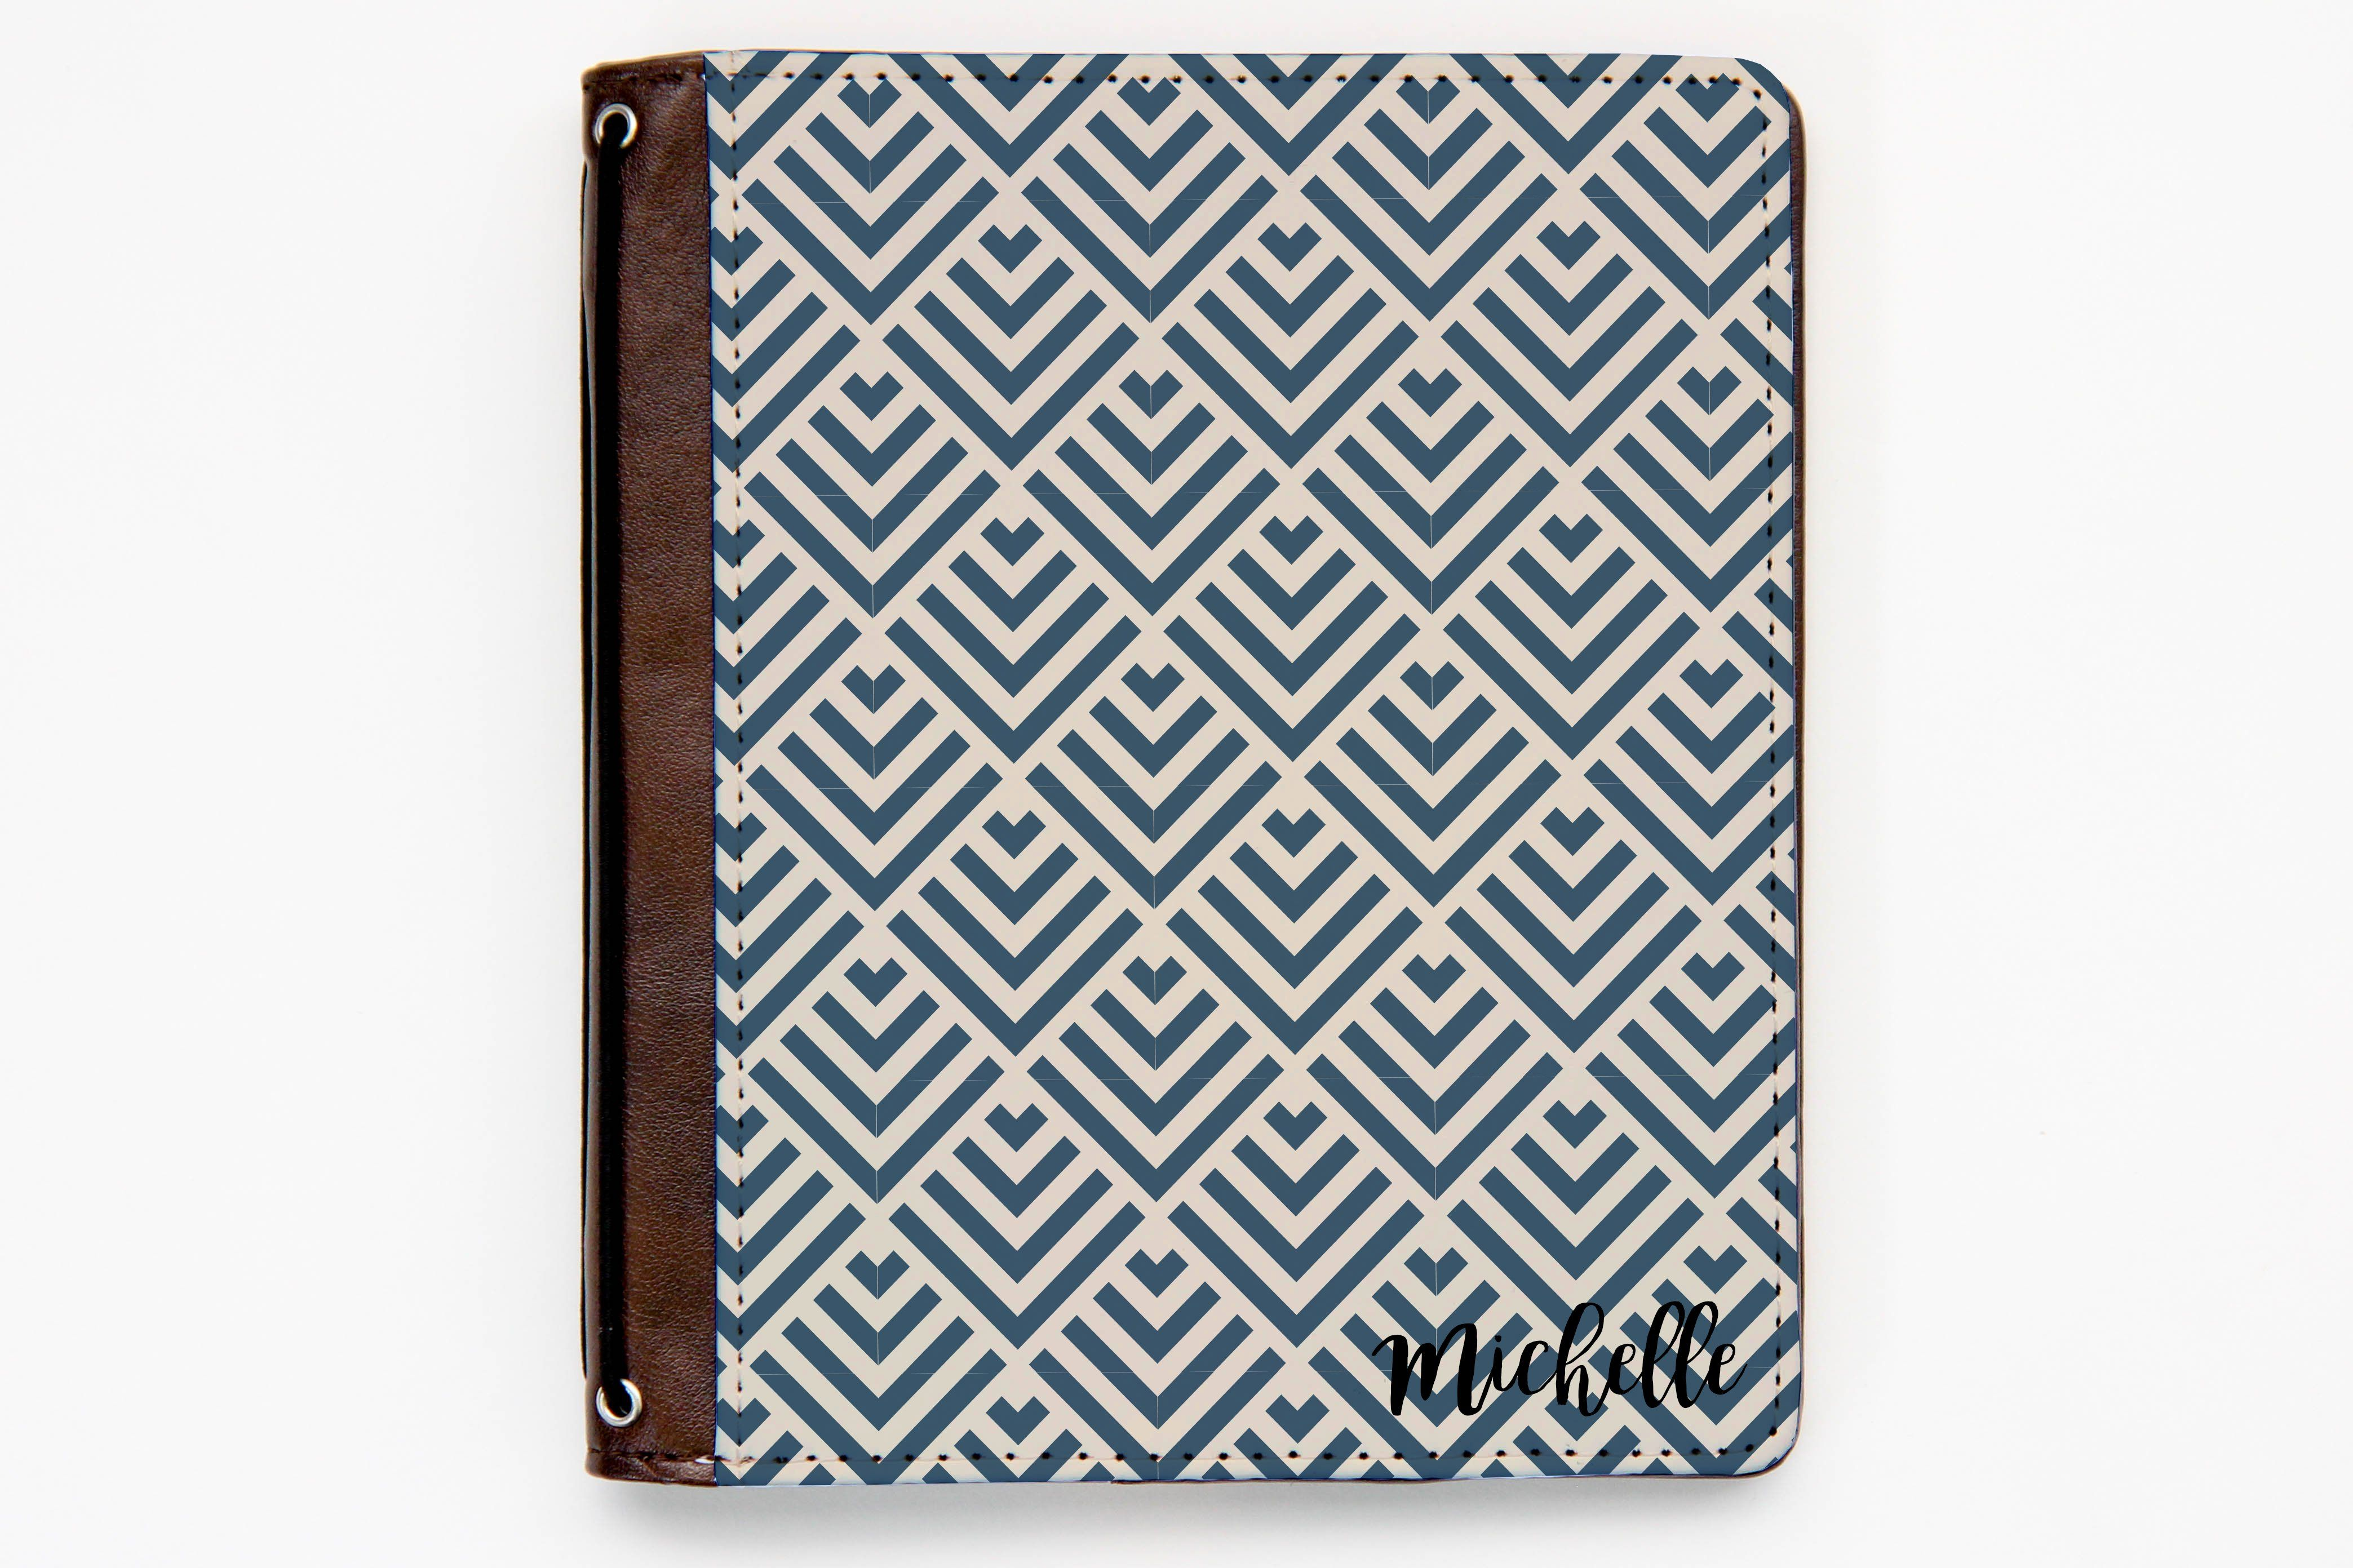 Art Deco Style Notebook Customizable Traveler S Notebook Cover Art Deco Triangles